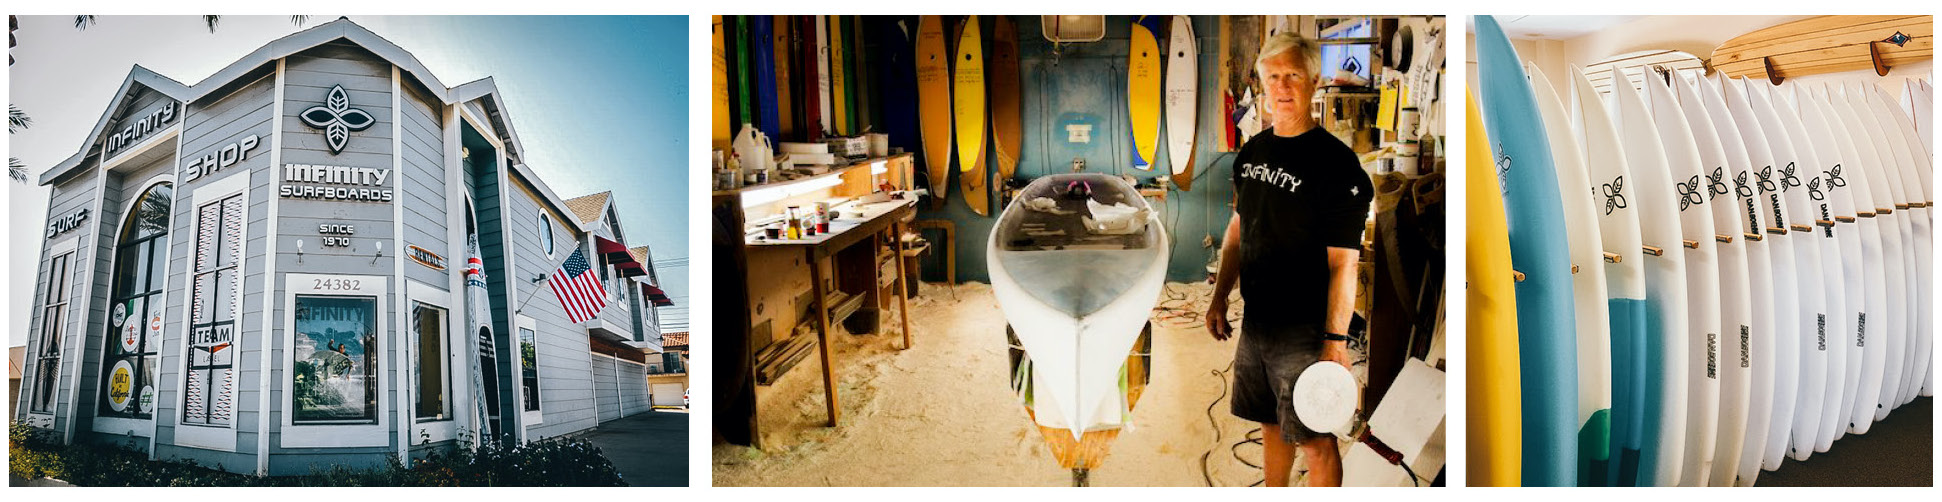 The Infinity Surfboards Shop located in Dana Point, California